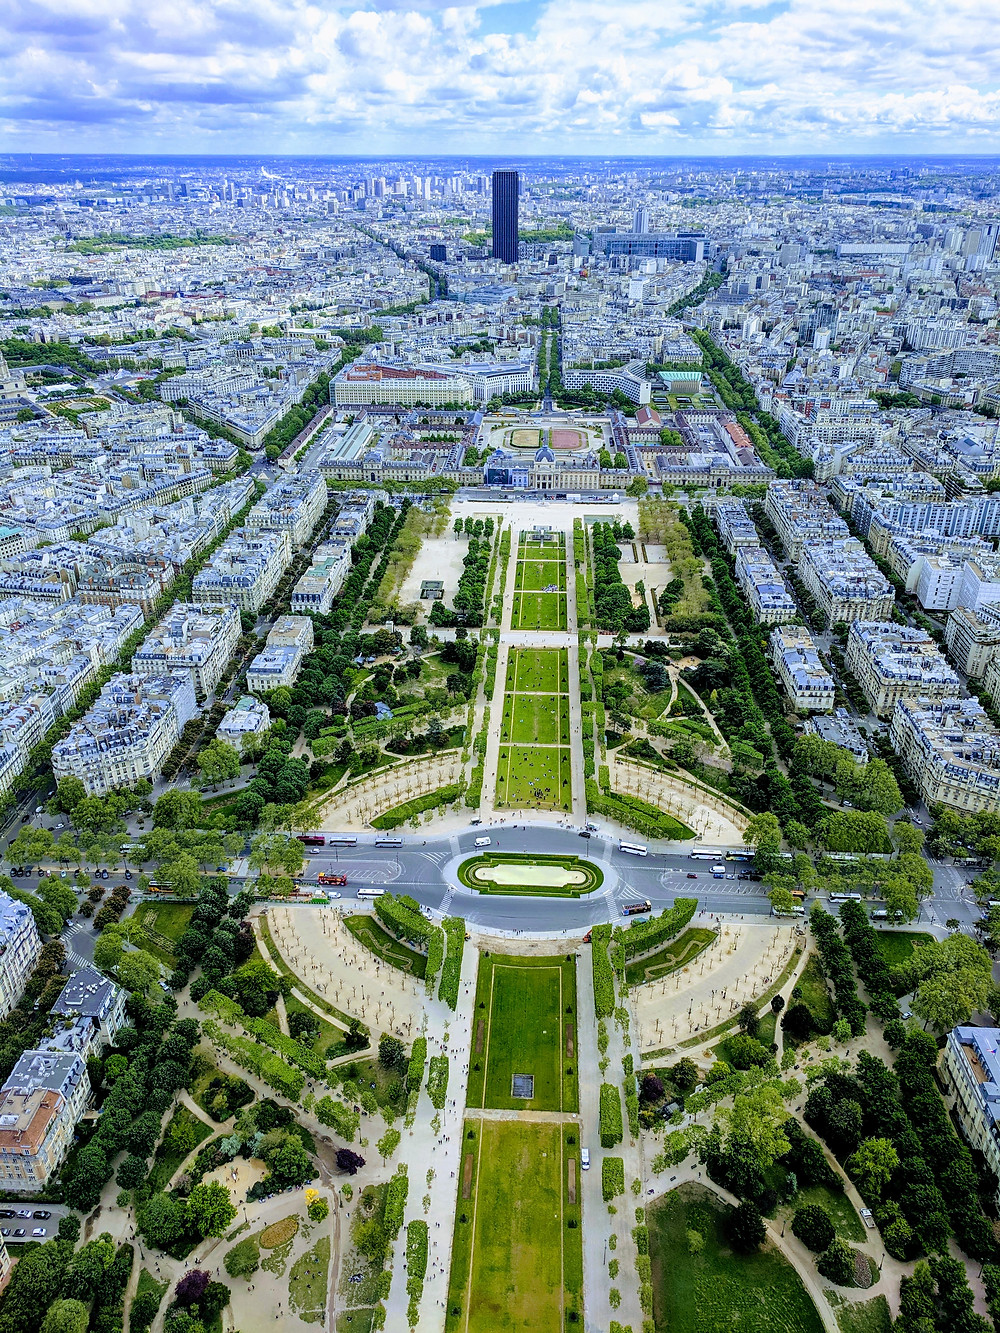 City of Love(Paris).. from atop the Eiffel Tower..